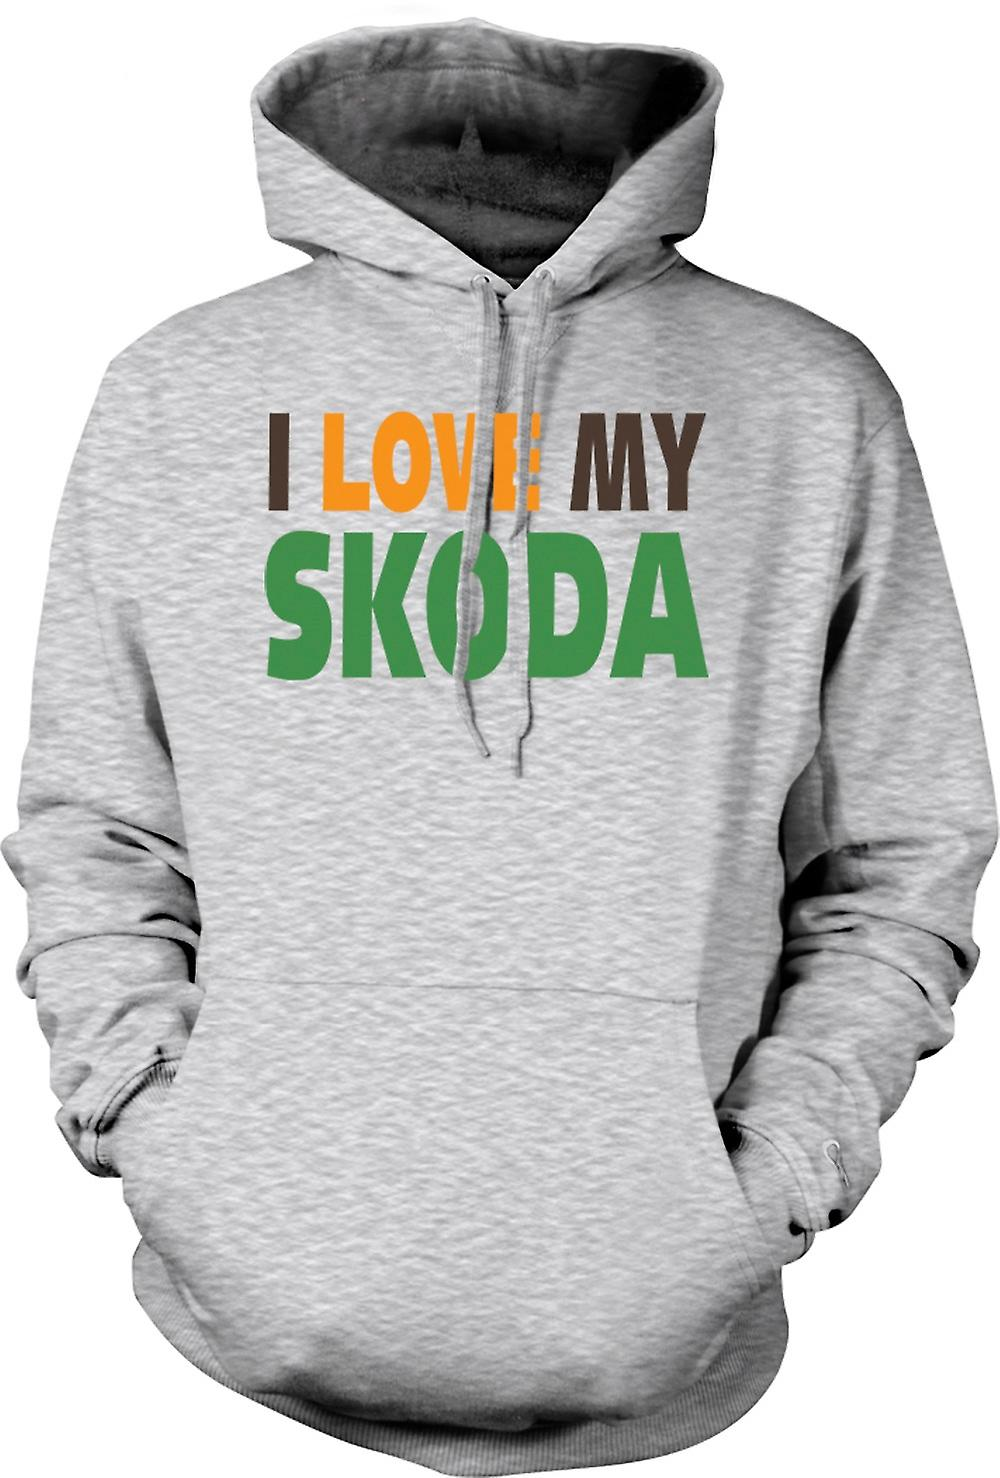 Mens Hoodie - I Love My Skoda - Car Enthusiast